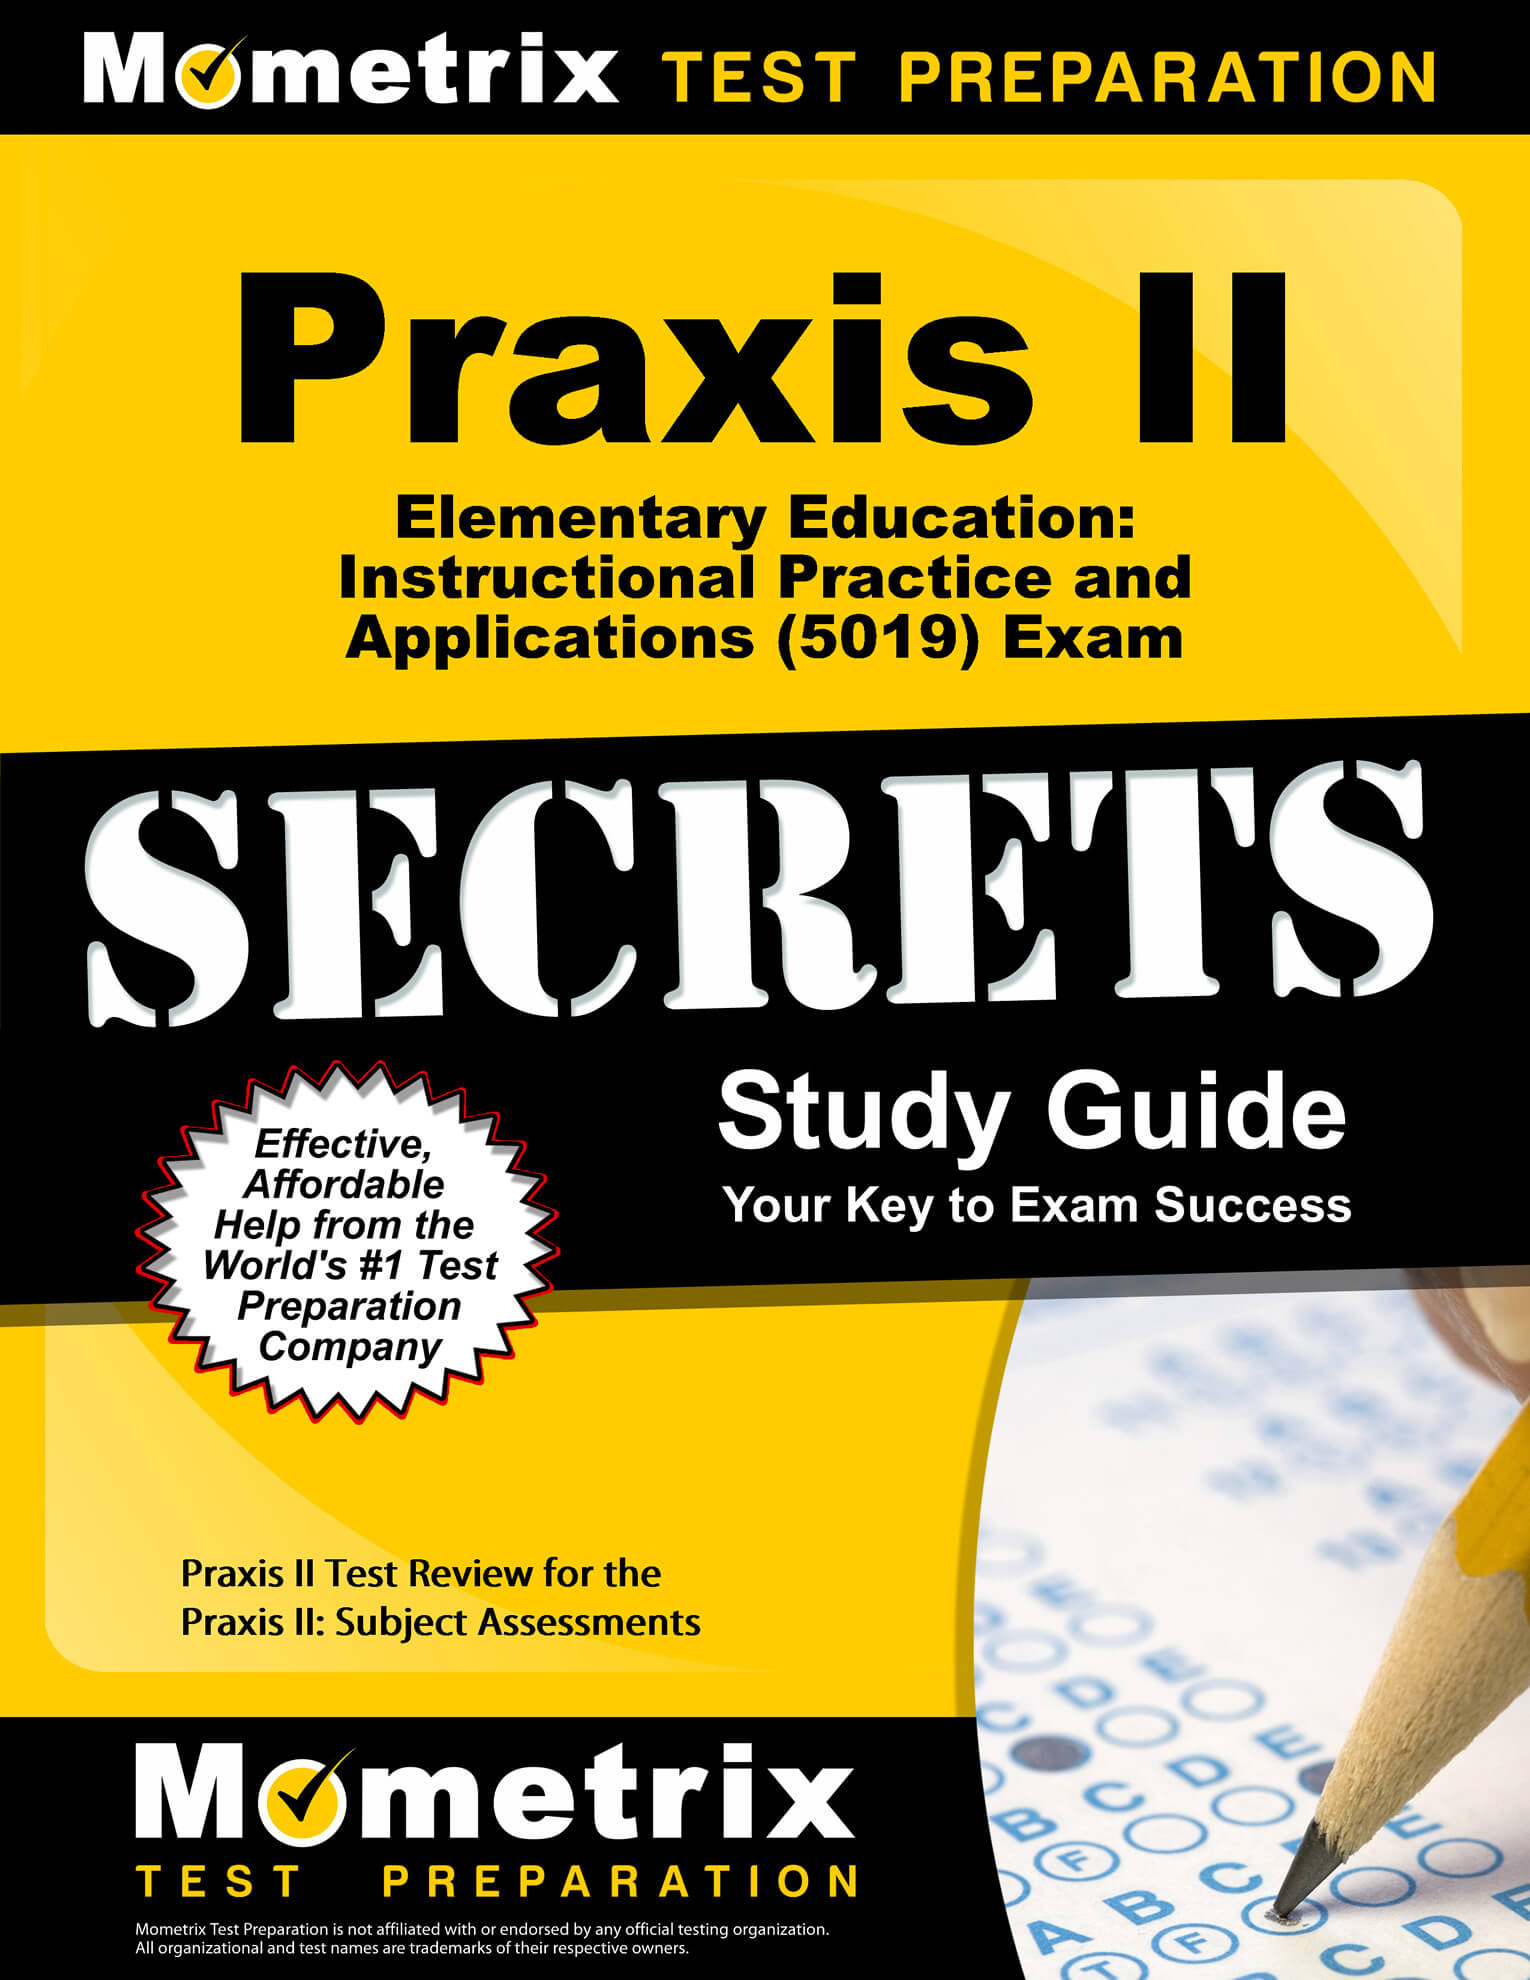 Praxis II Elementary Education: Instructional Practice and Applications Study Guide